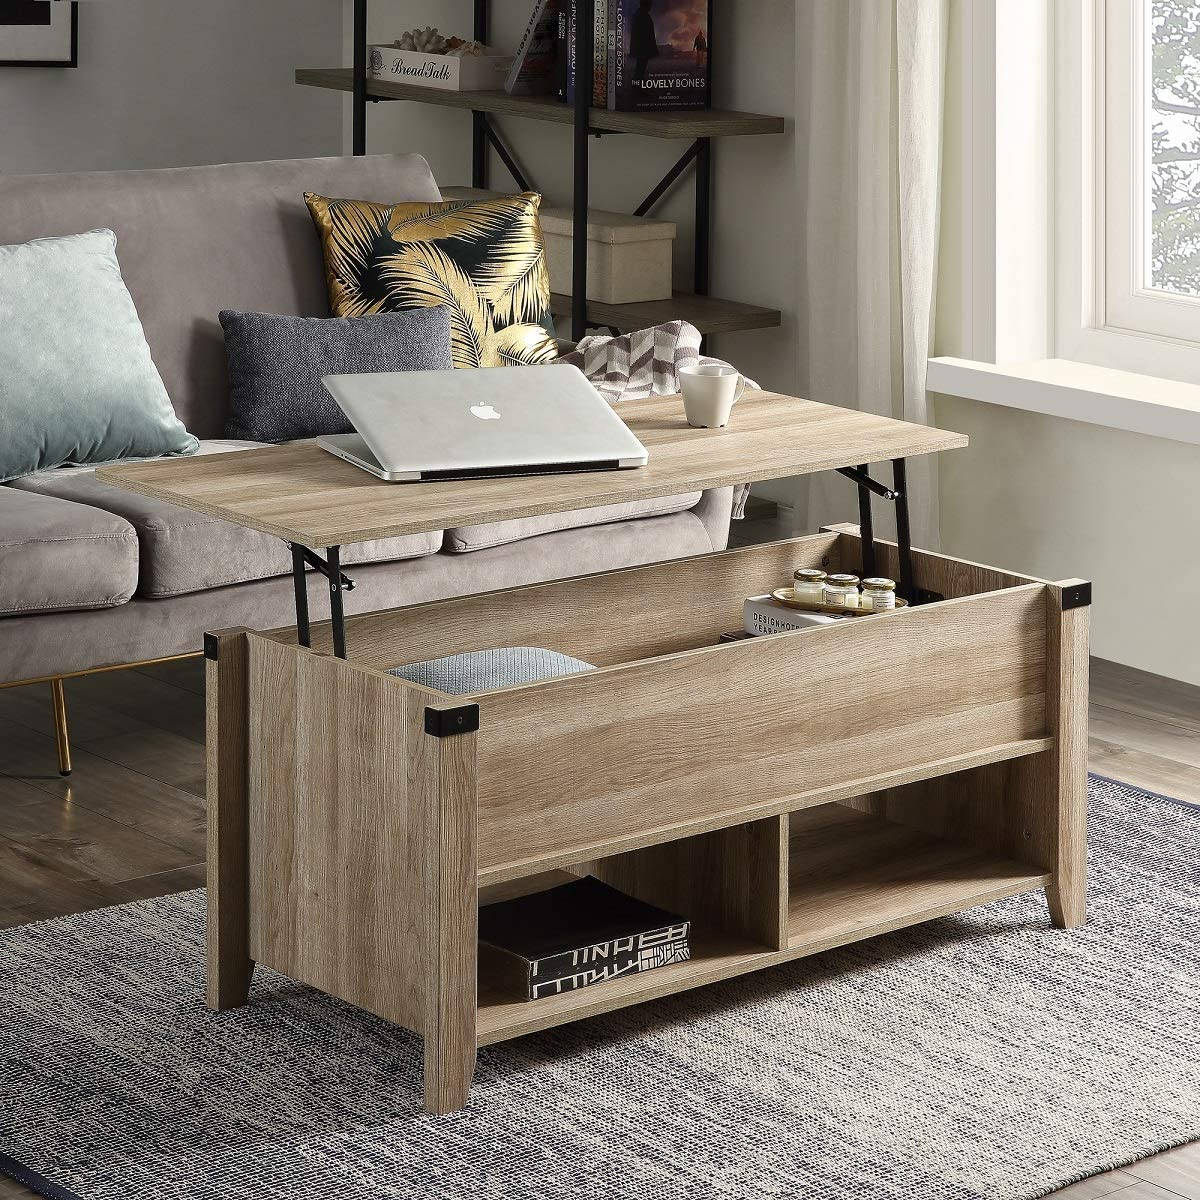 Henf Lift Top Coffee Table with Hidden Storage Compartment and Lower Shelf, Solid Wood Legs Adjustable Height Dining Table Modern Furniture for Home Living Room, Oak